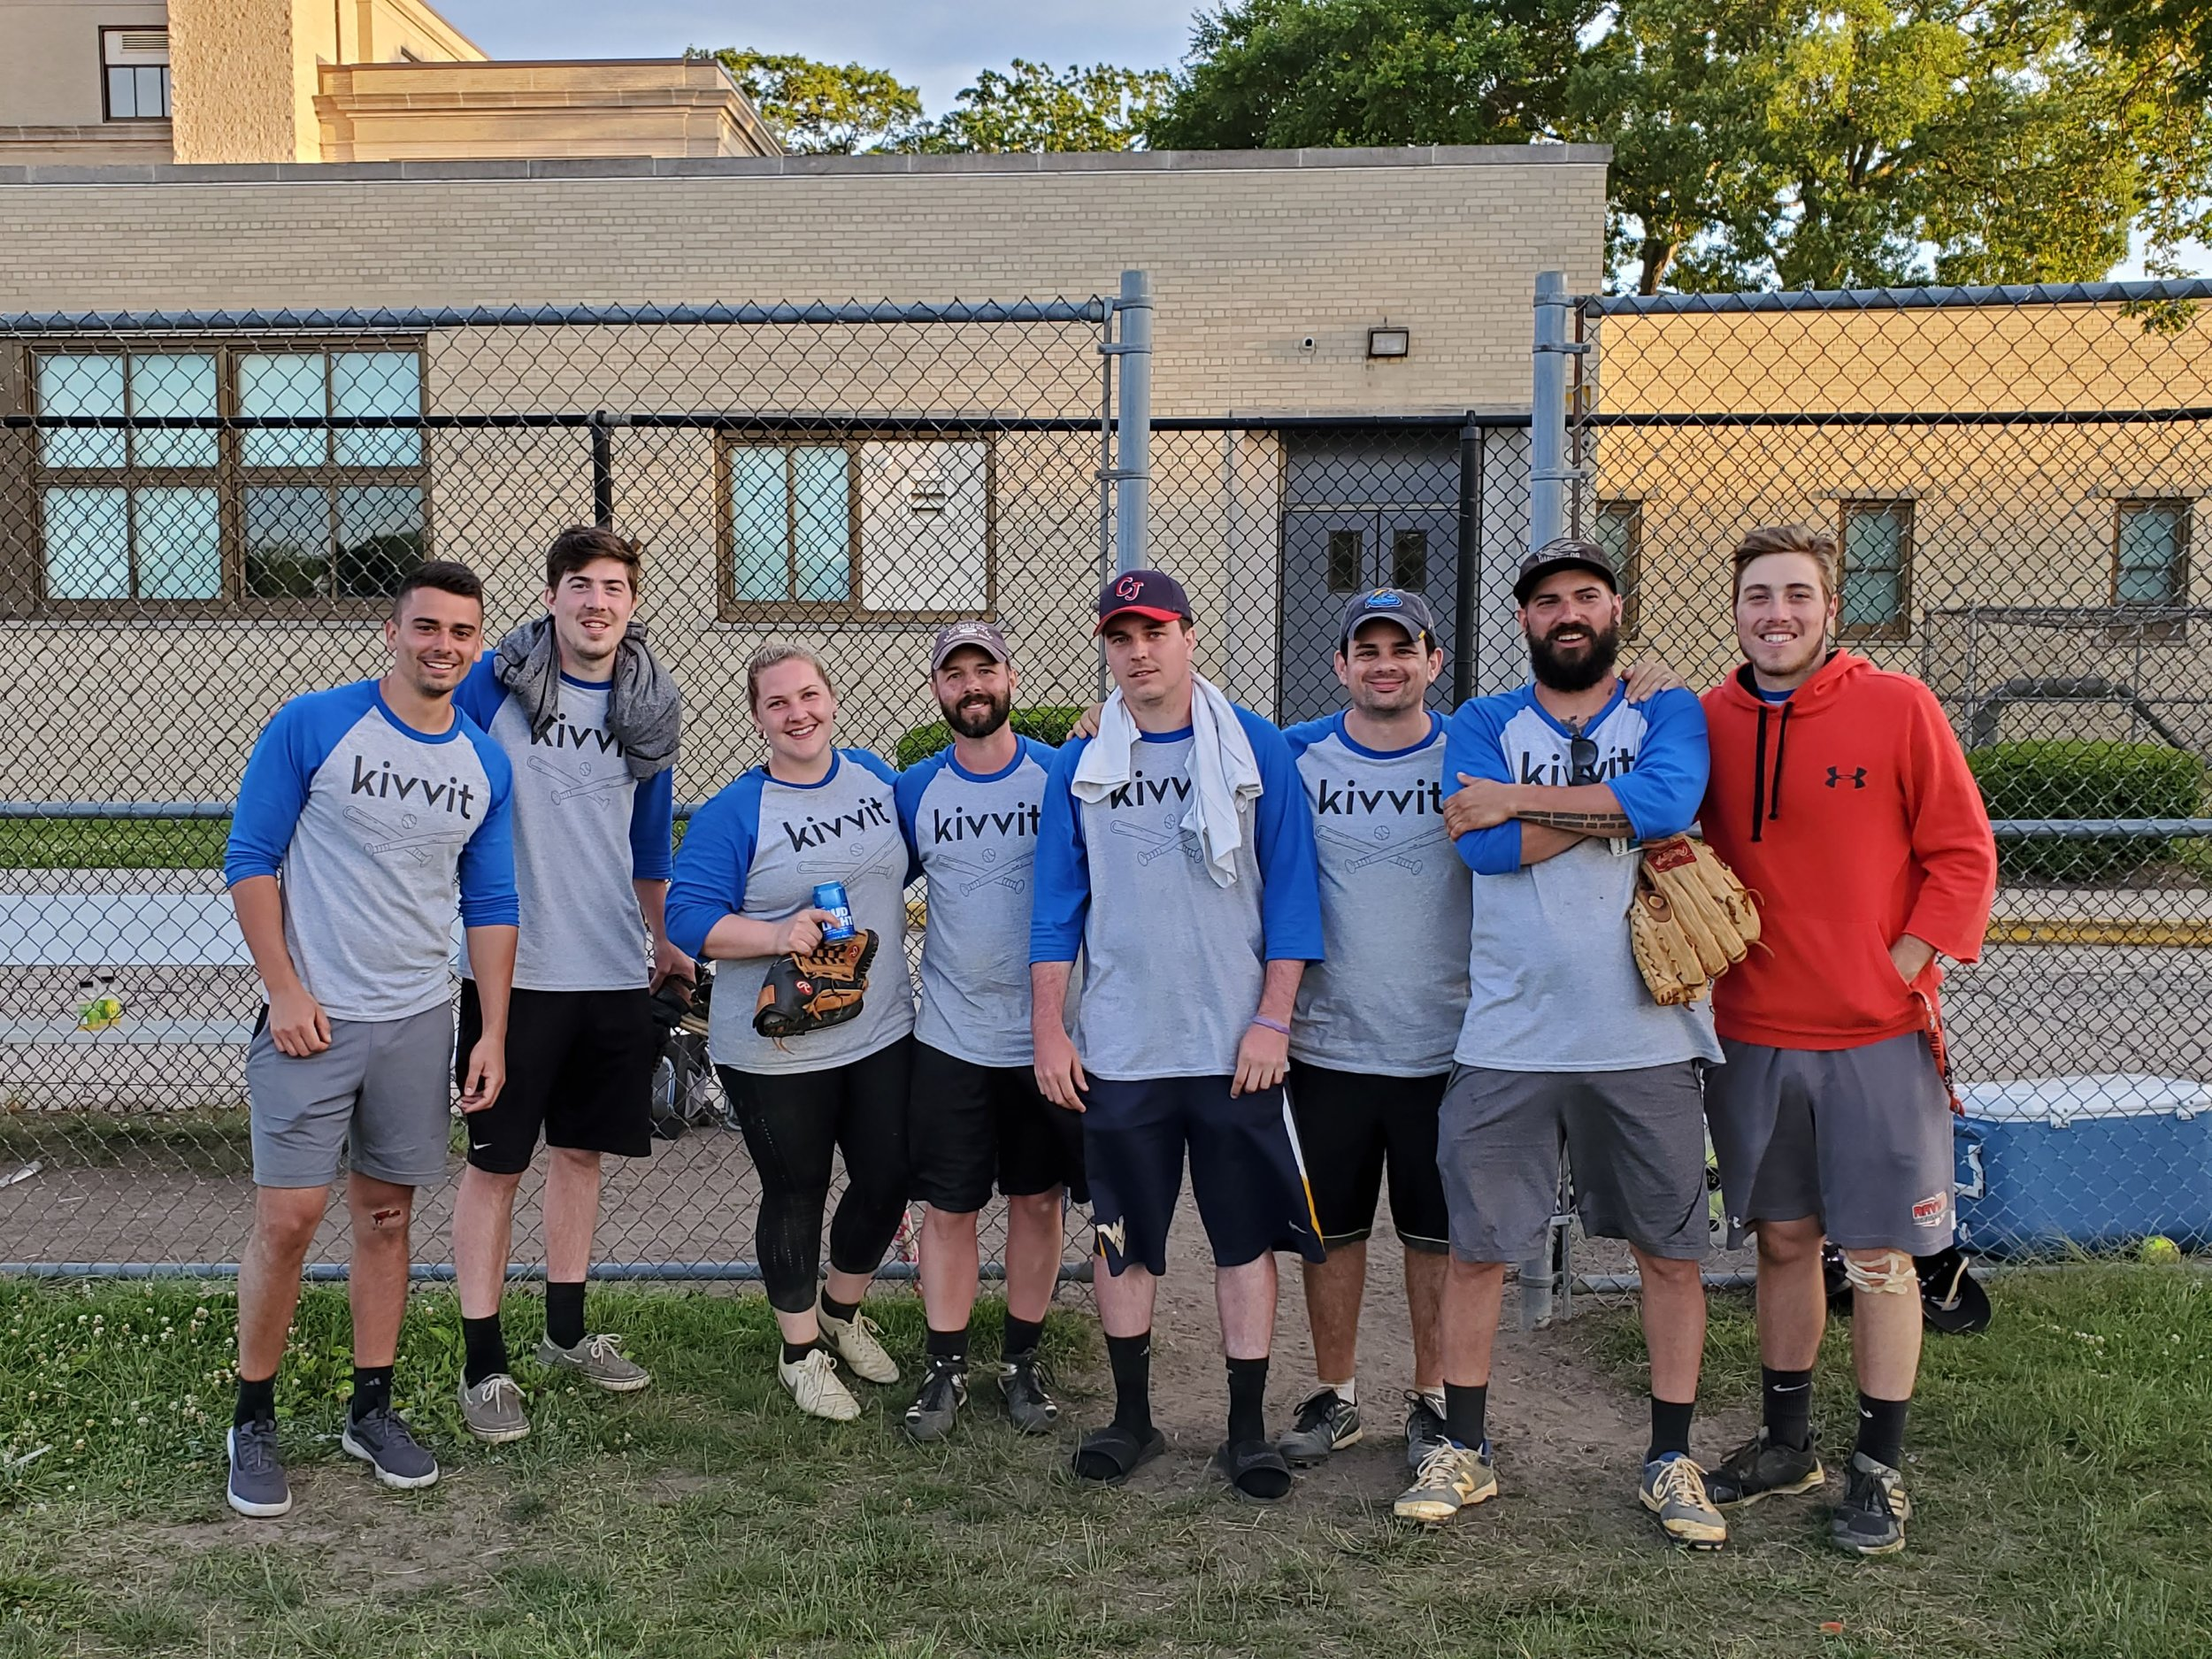 In the final game of the bracket team Kivvit was beaten by Asbury Beirgarten taking second place. Great games till the end!